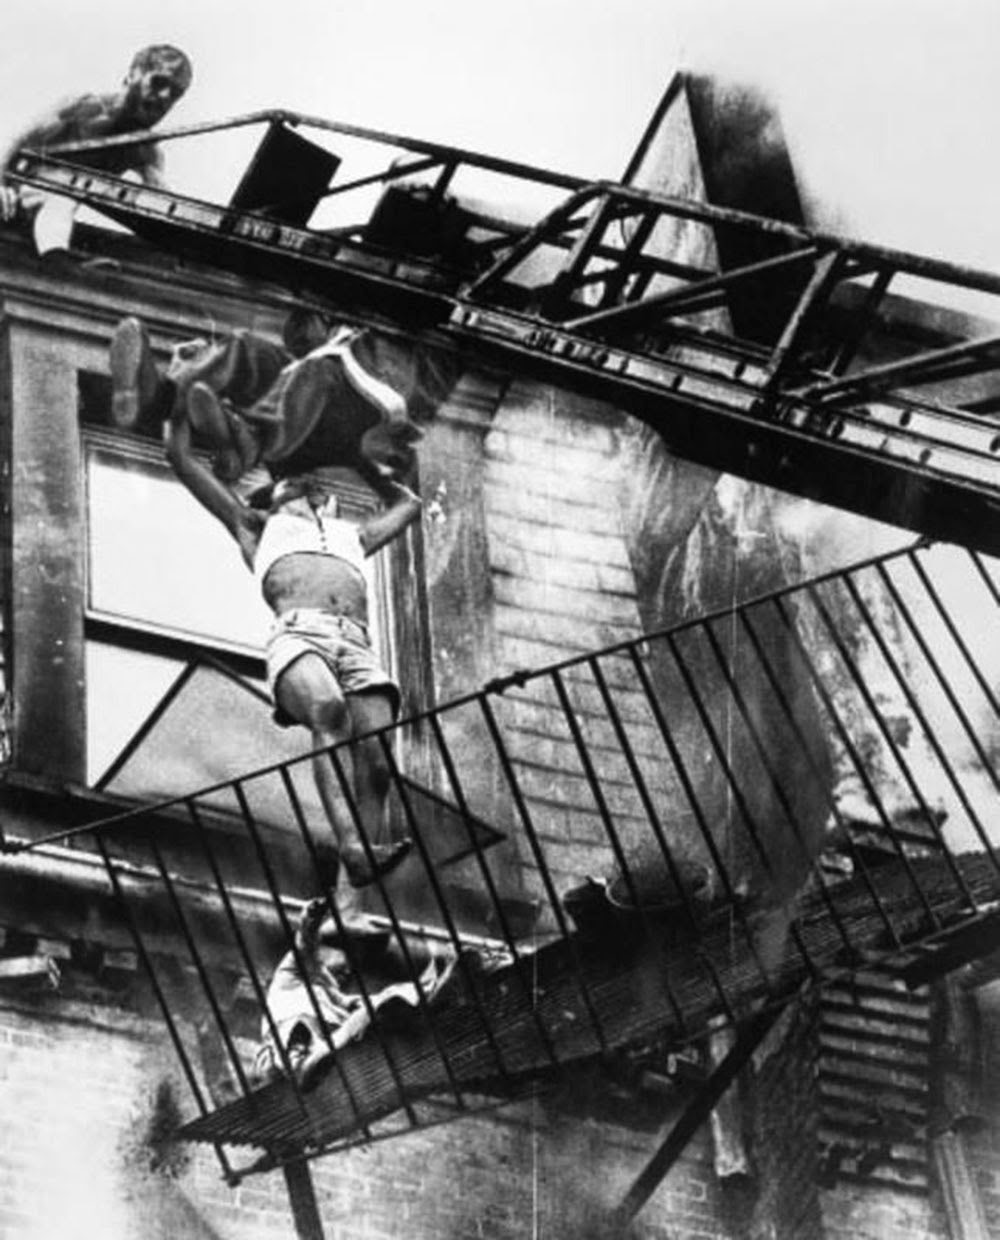 When the fire escape collapsed.